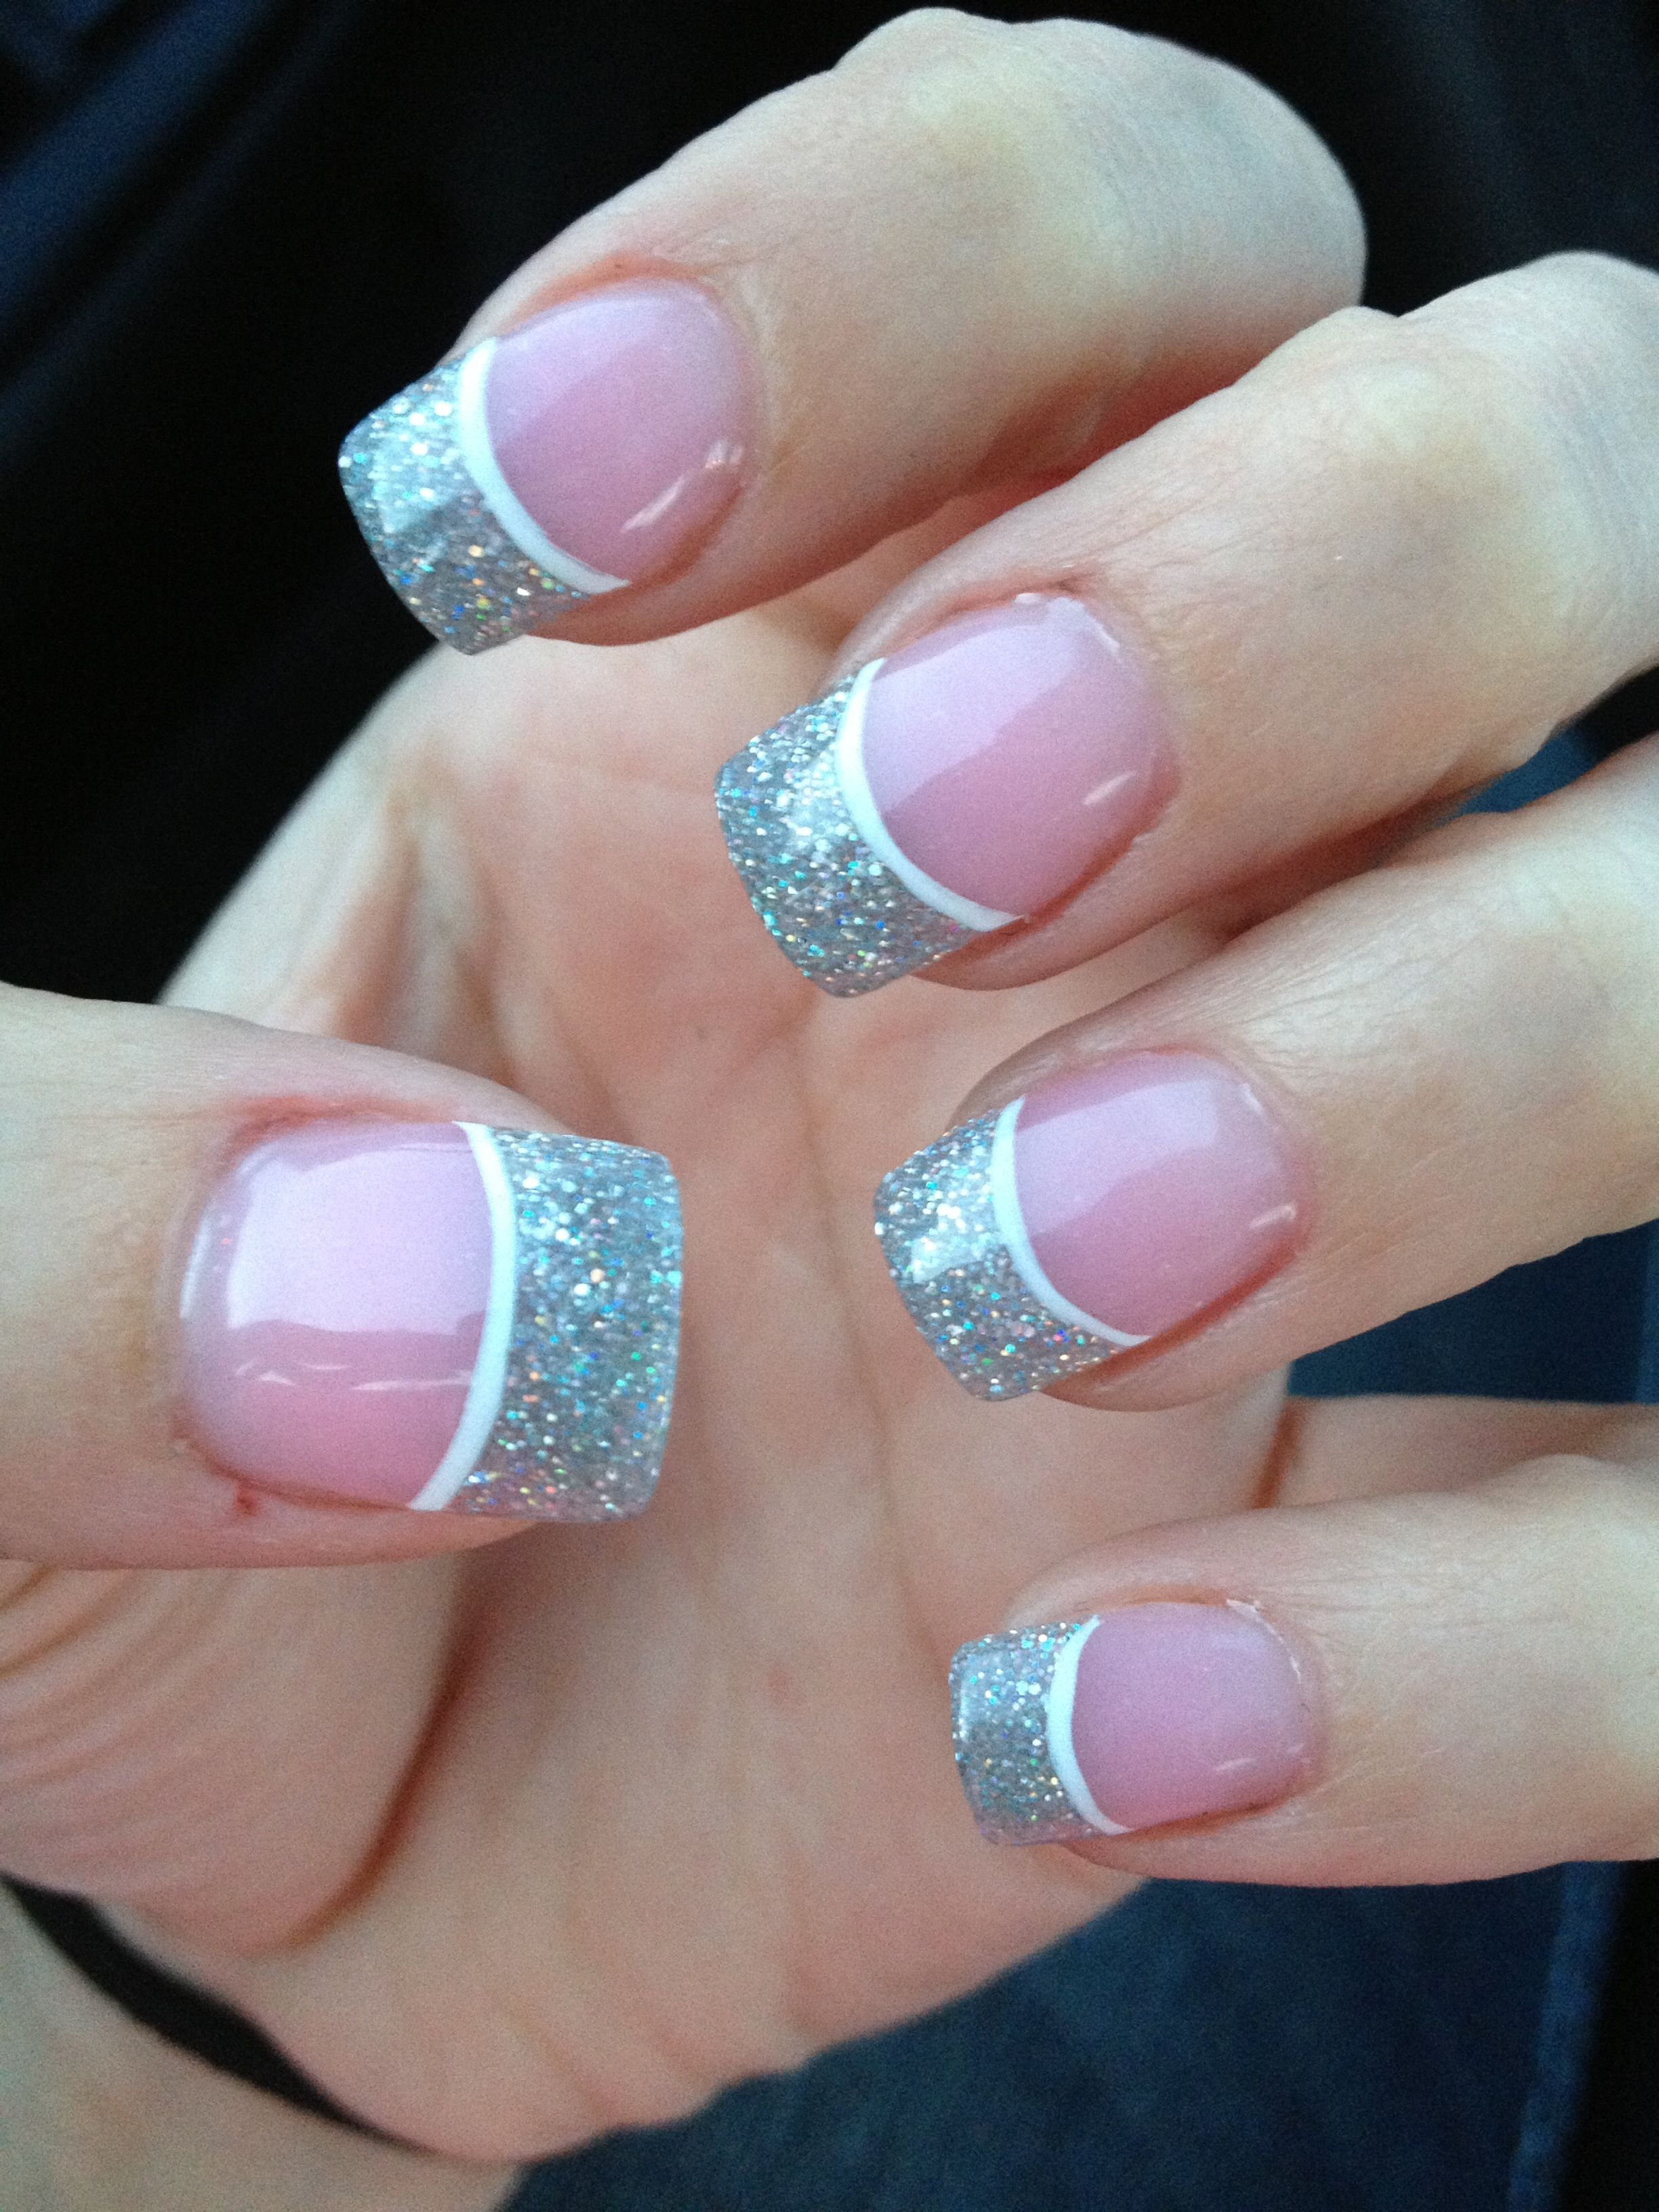 silver and white prom nails!   Nails.   Pinterest   Prom nails, Prom ...